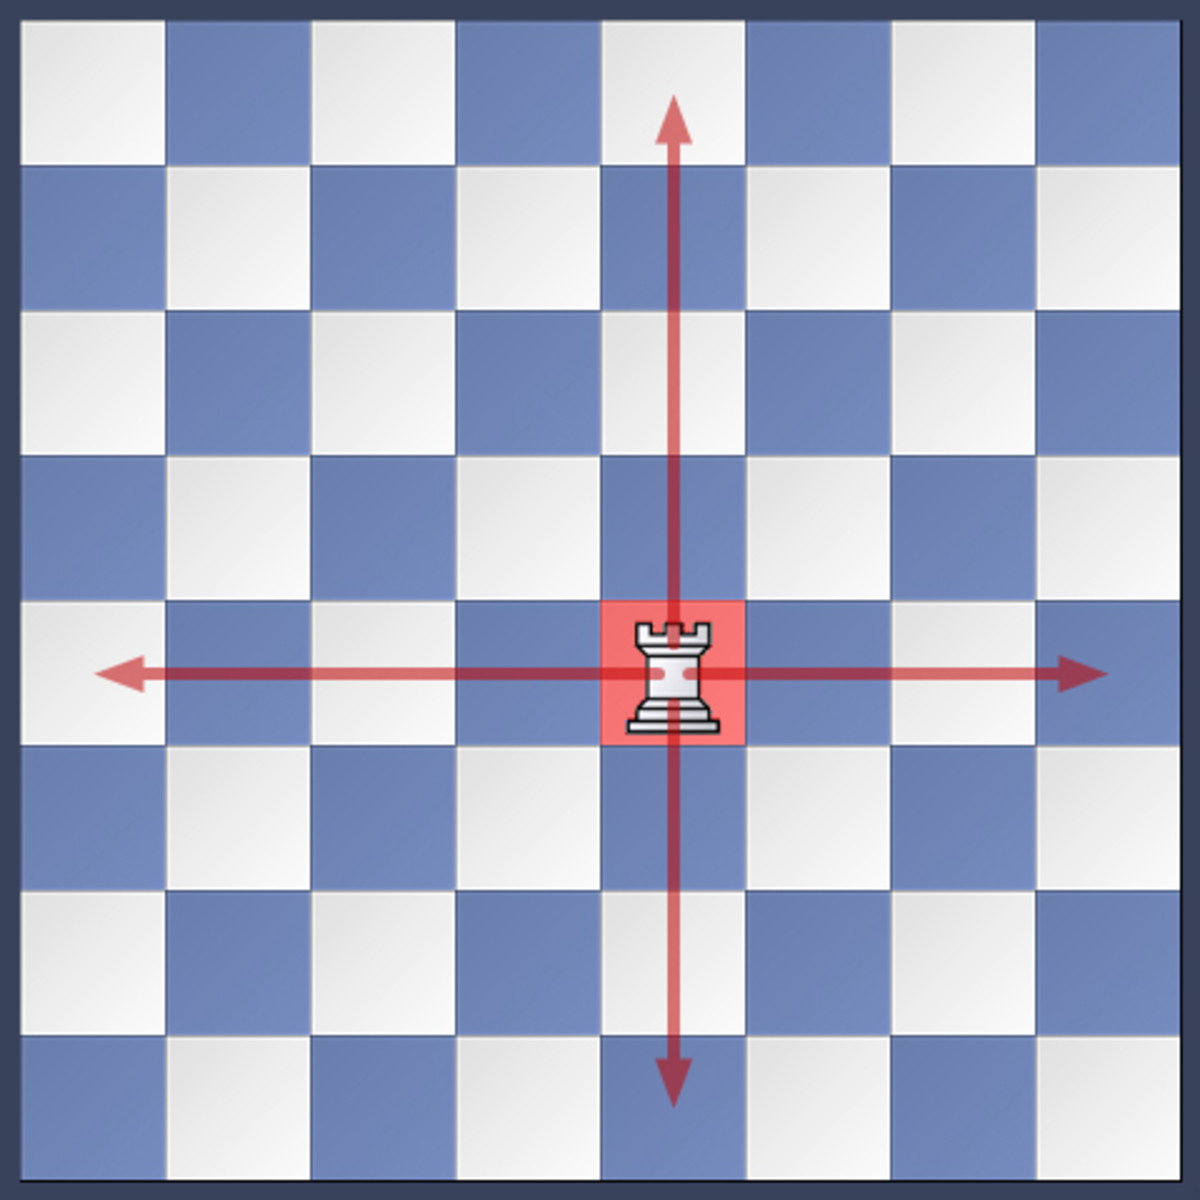 Learn To Play Chess Visual Guide Basics Rules Amp Tips